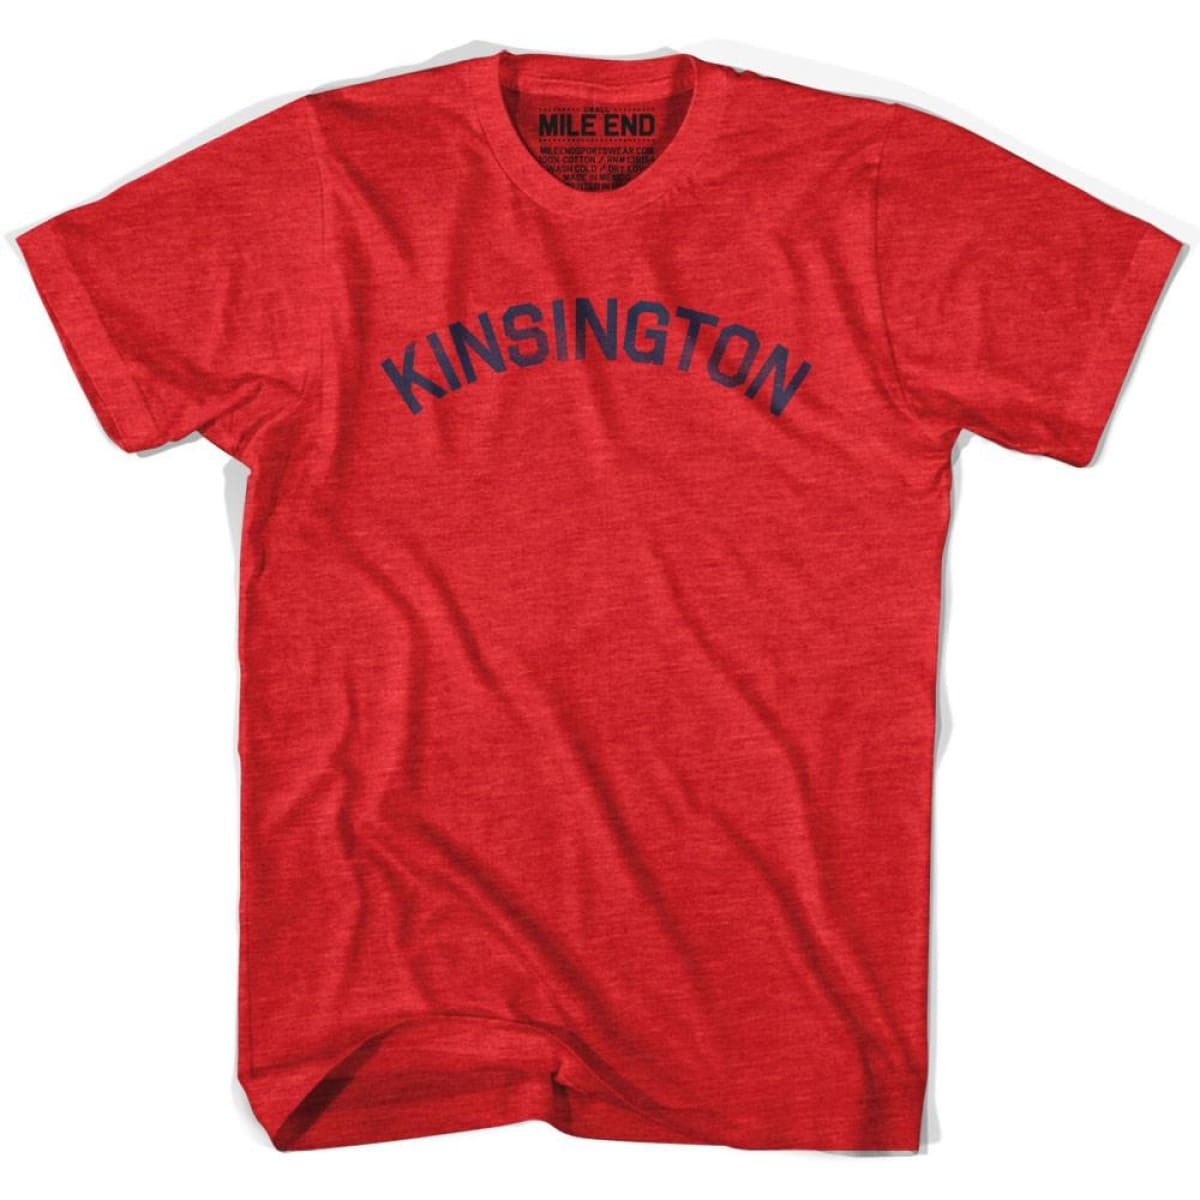 Kinsington City Vintage T-shirt - Heather Red / Adult X-Small - Mile End City